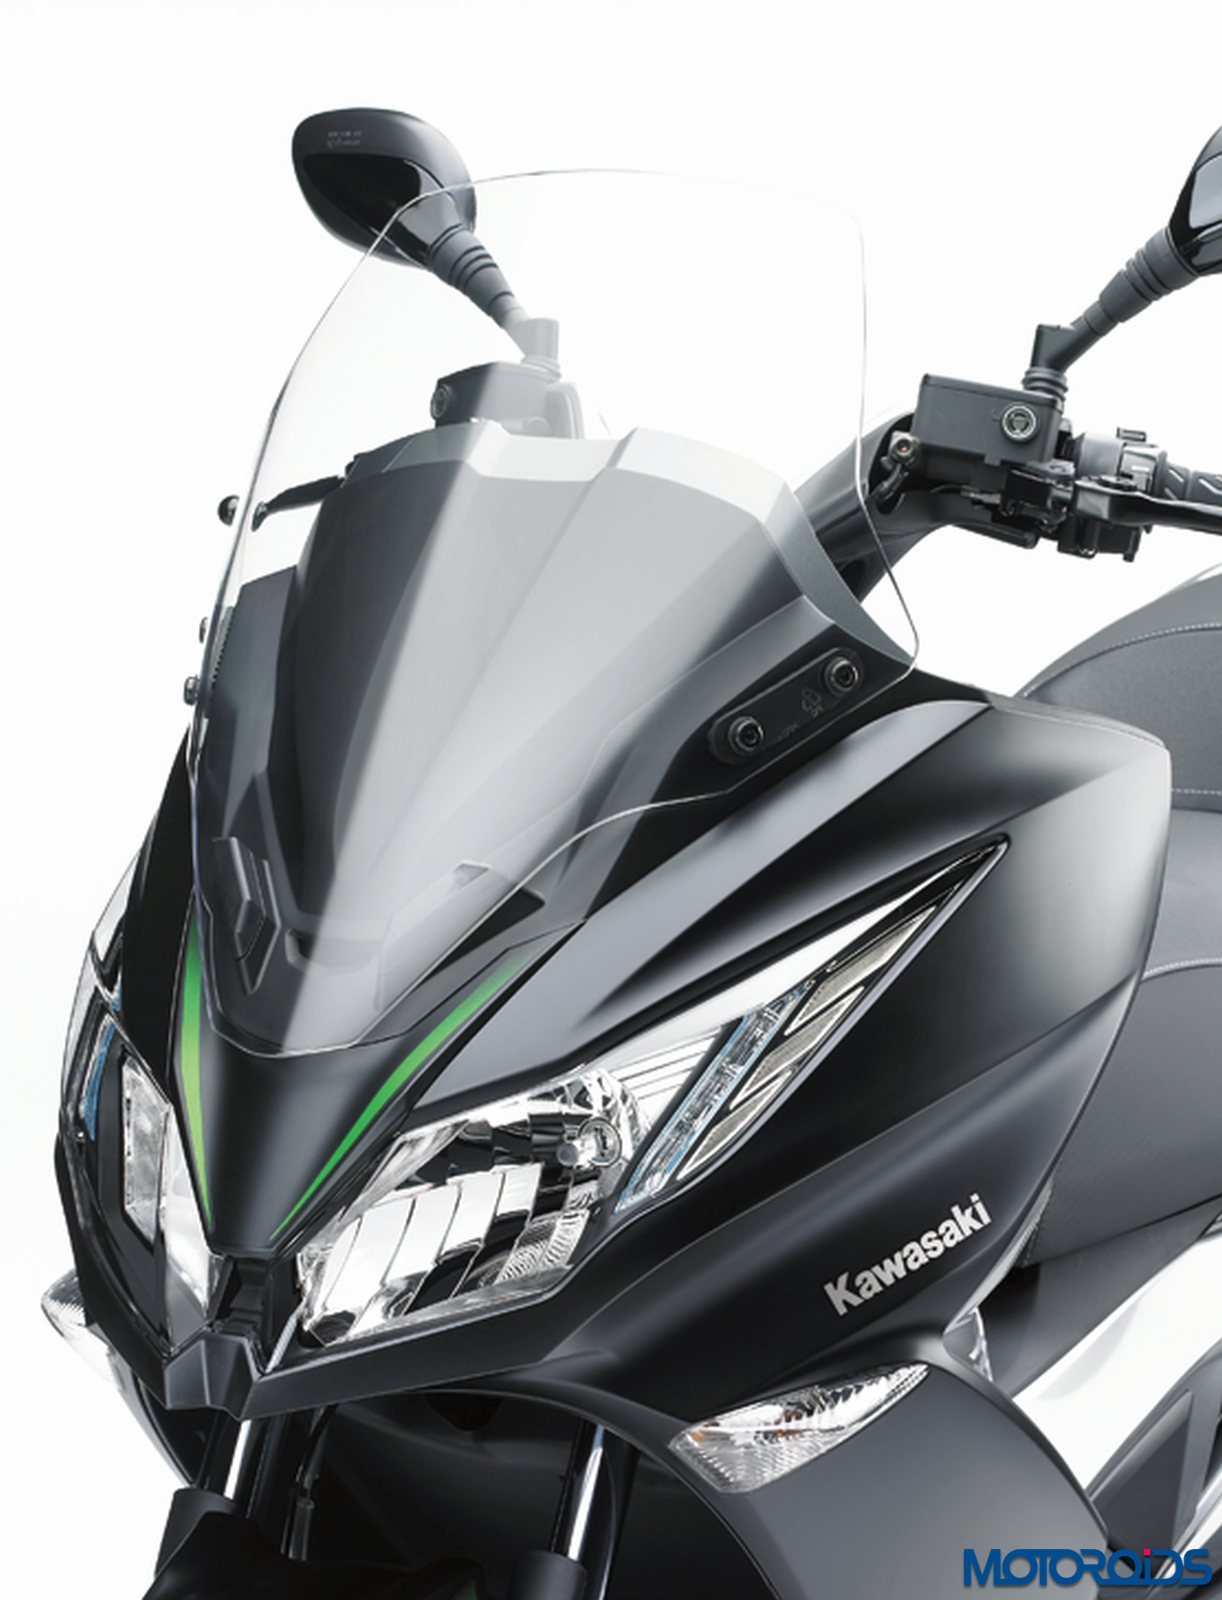 eicma 2015: kawasaki j125 unveiled, the first 125cc scooter from